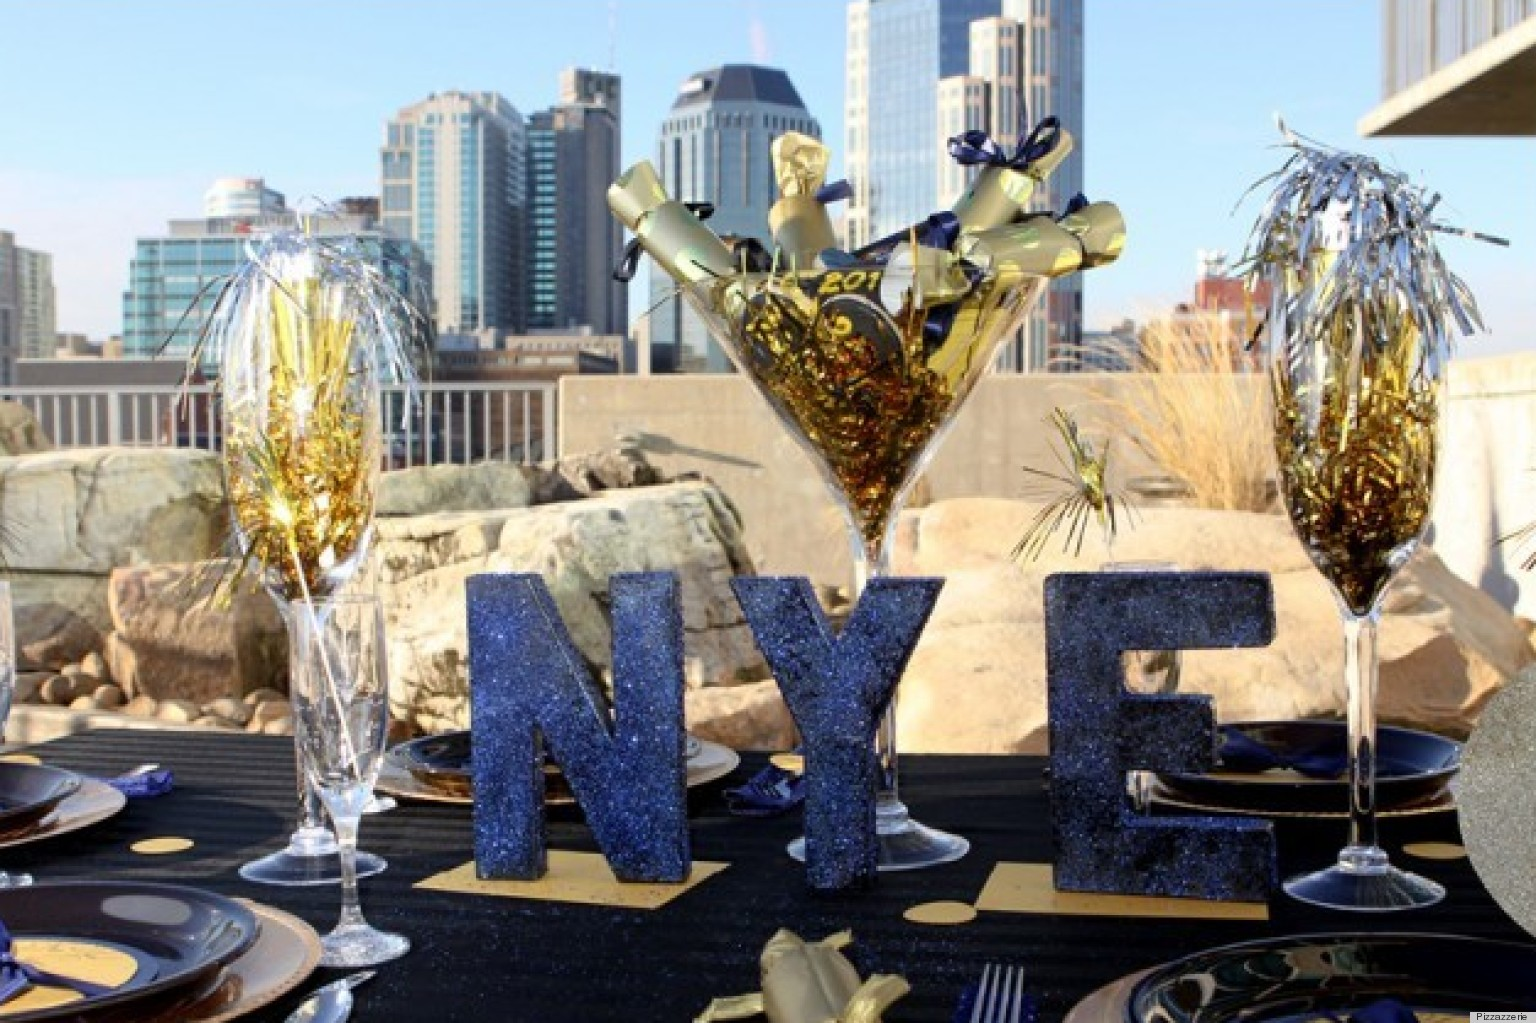 New Year's Eve Decorations That Will Make Your Party Sparkle